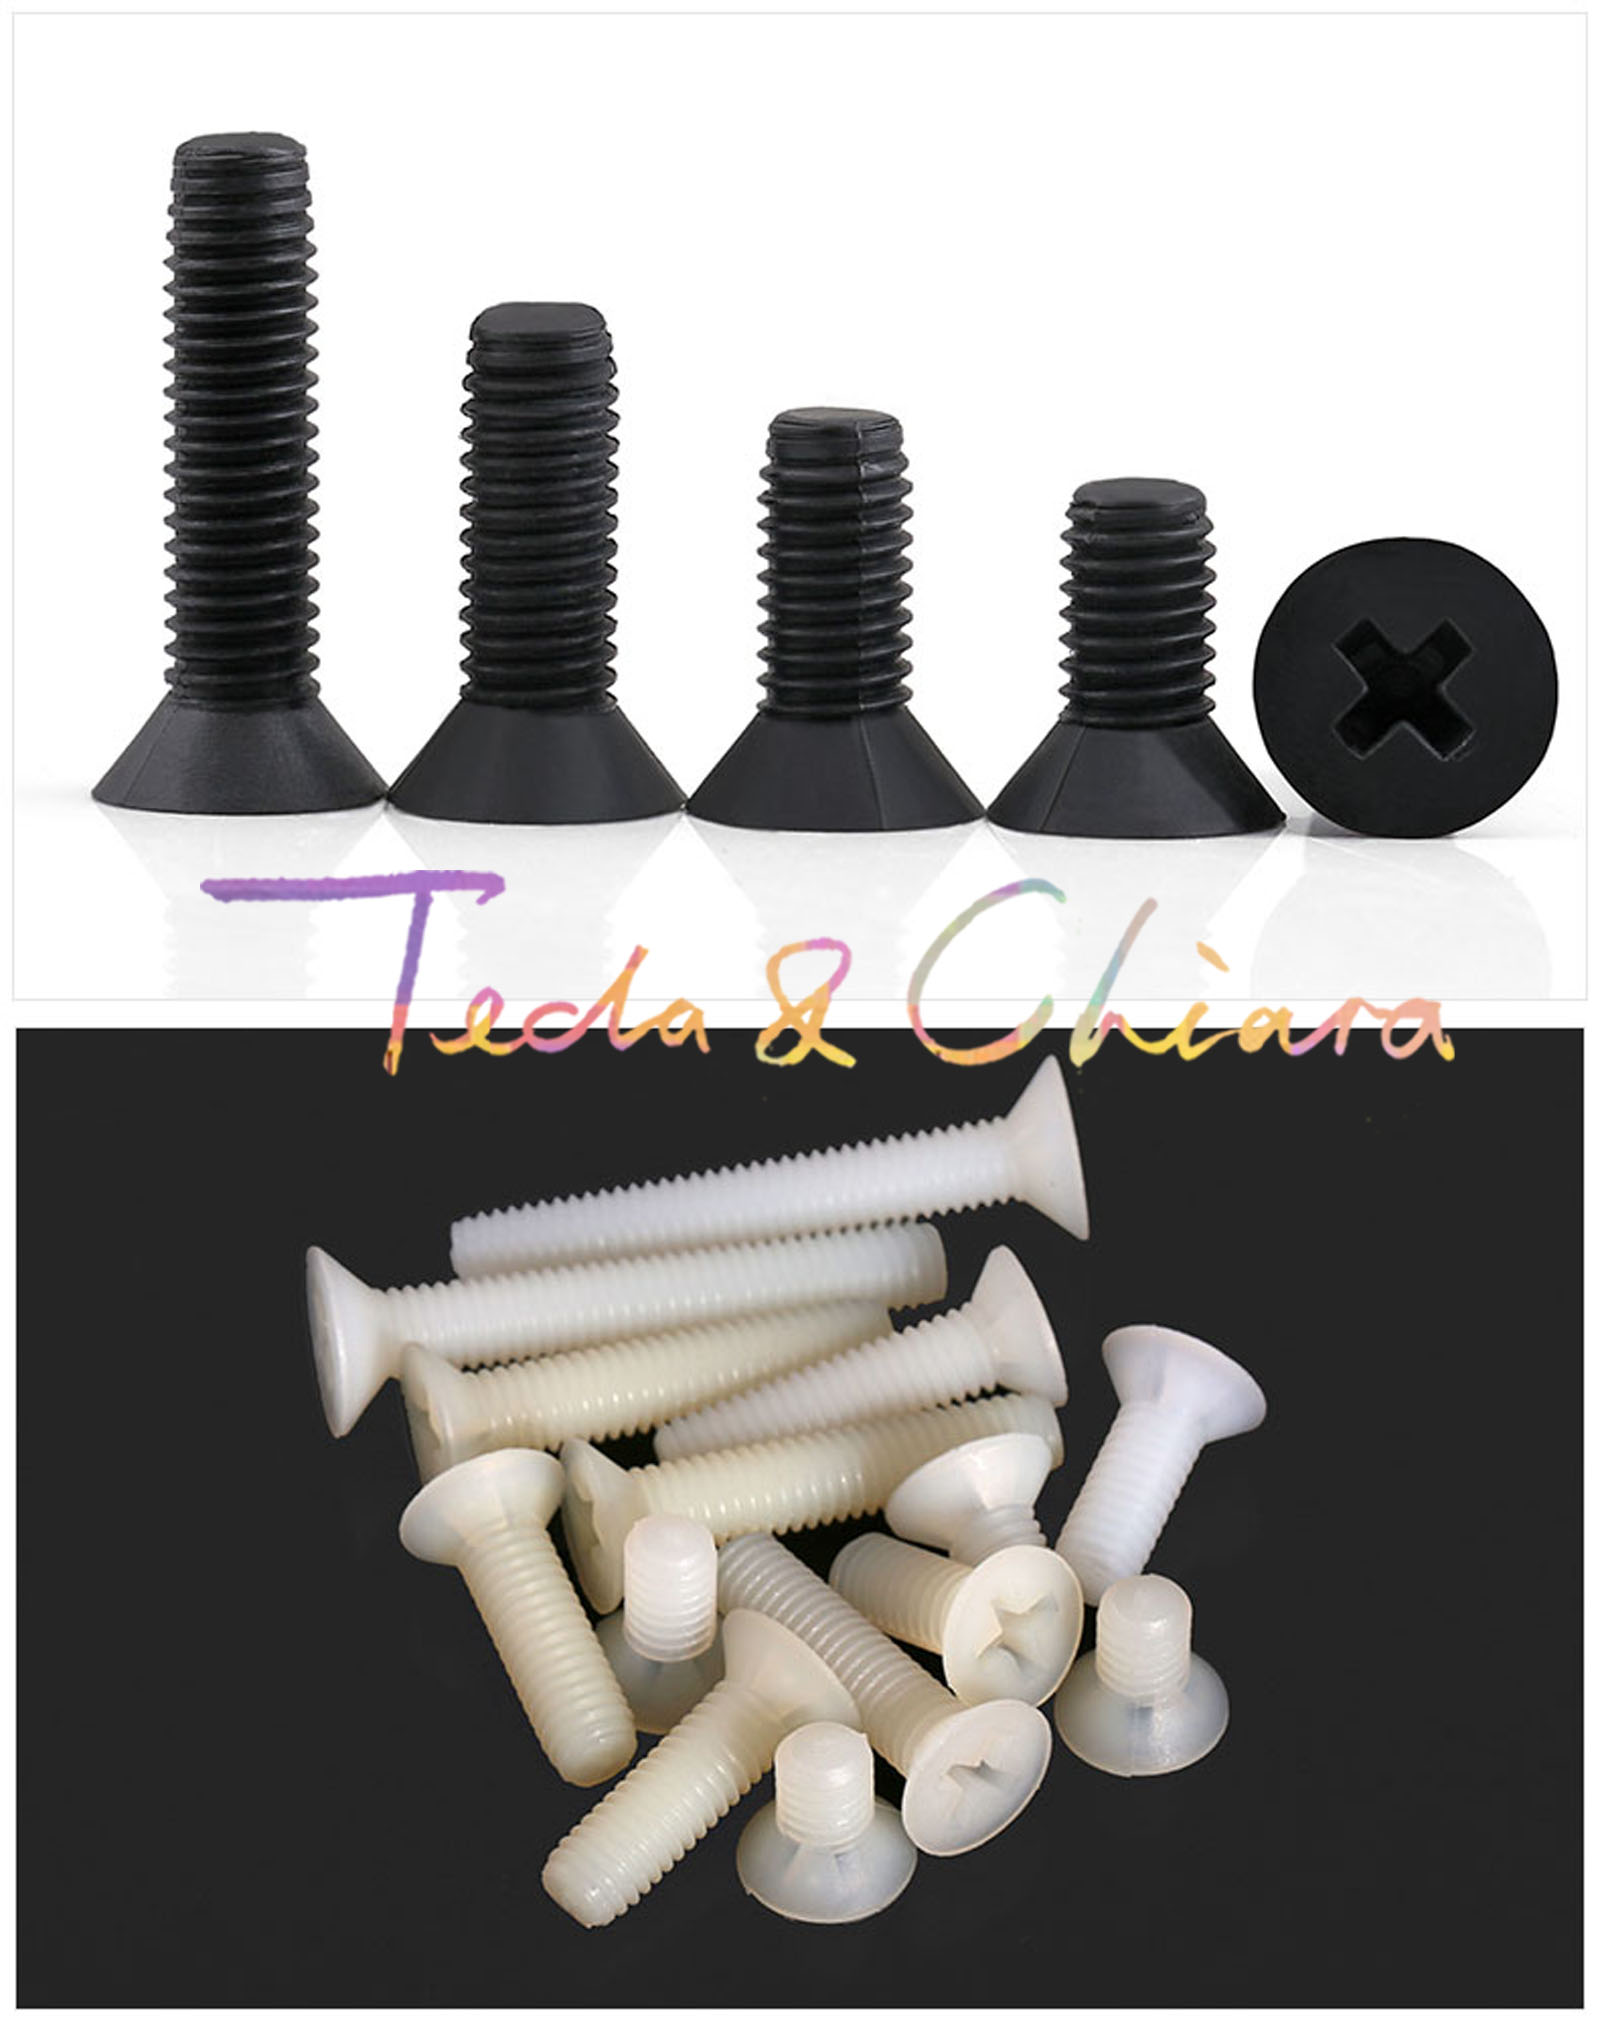 10Pcs <font><b>M5</b></font> x <font><b>40mm</b></font> New L 40 White Black Nylon Machine Phillips Flat Head Cross Recessed Countersunk Head Screw Plastic * image